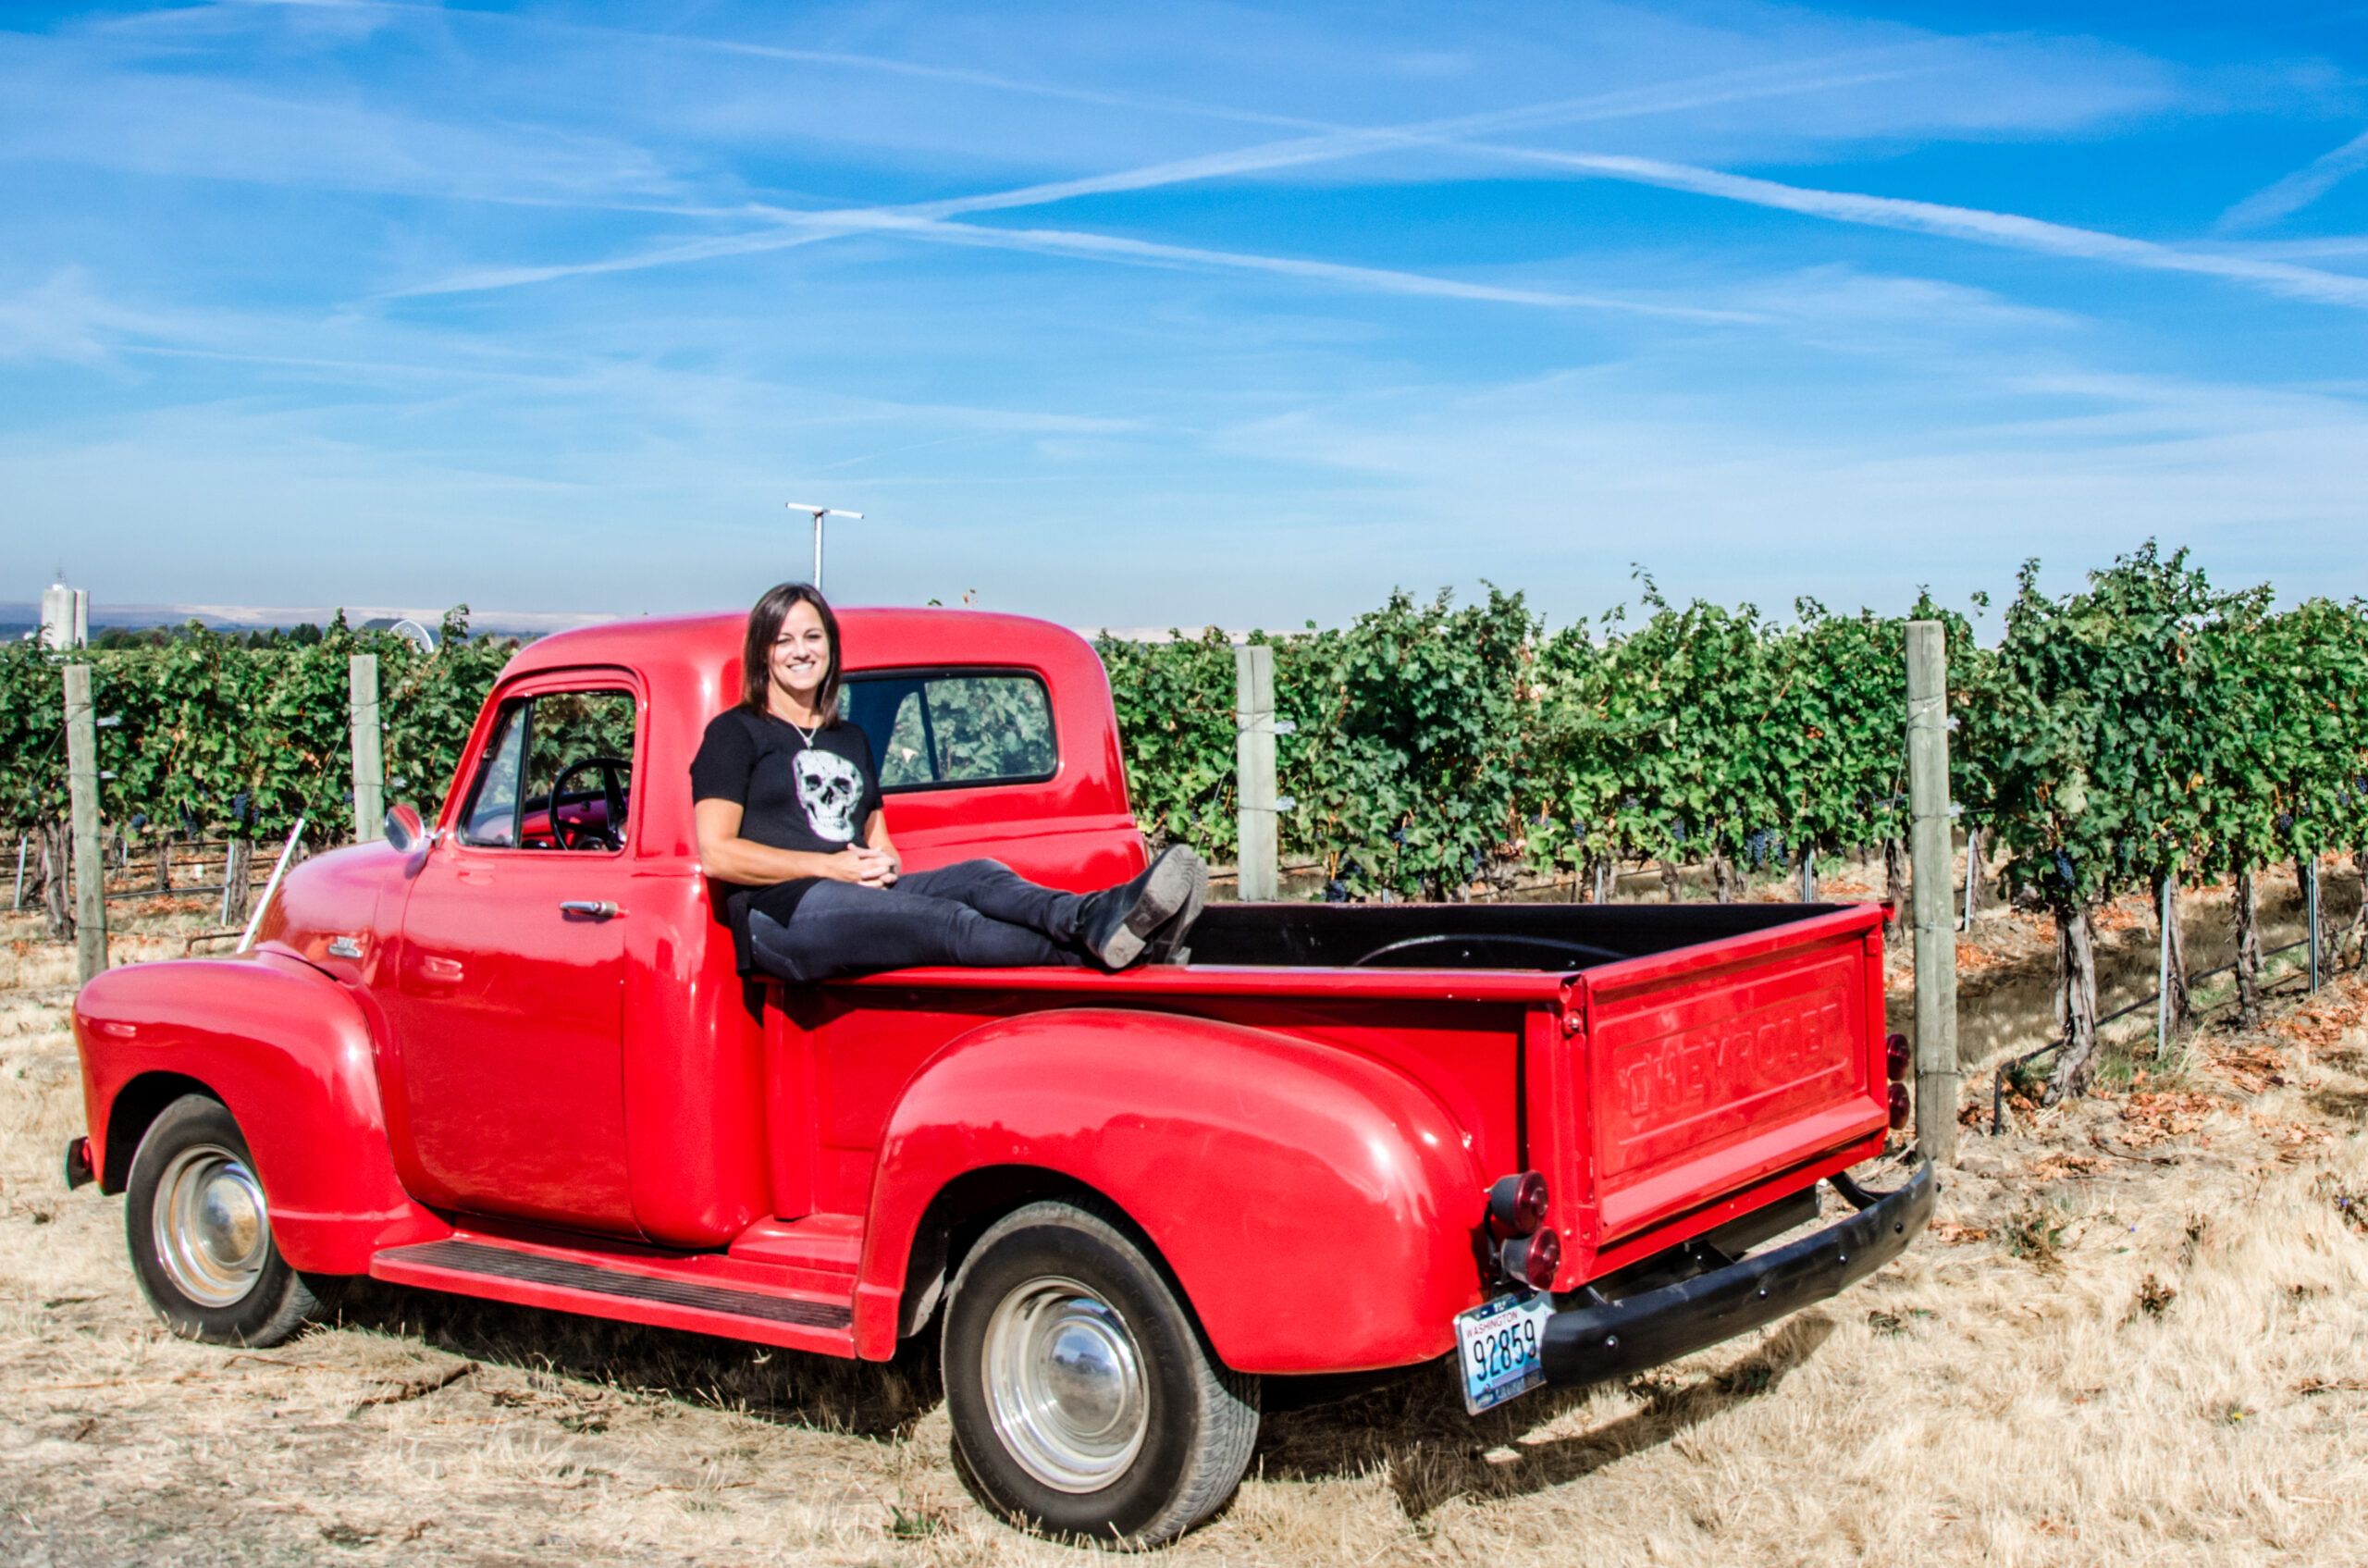 Woman with short dark hair sits on the side of a vintage red pick-up truck in front of green grape vines and posts. Sky above is blue with wispy white clouds.